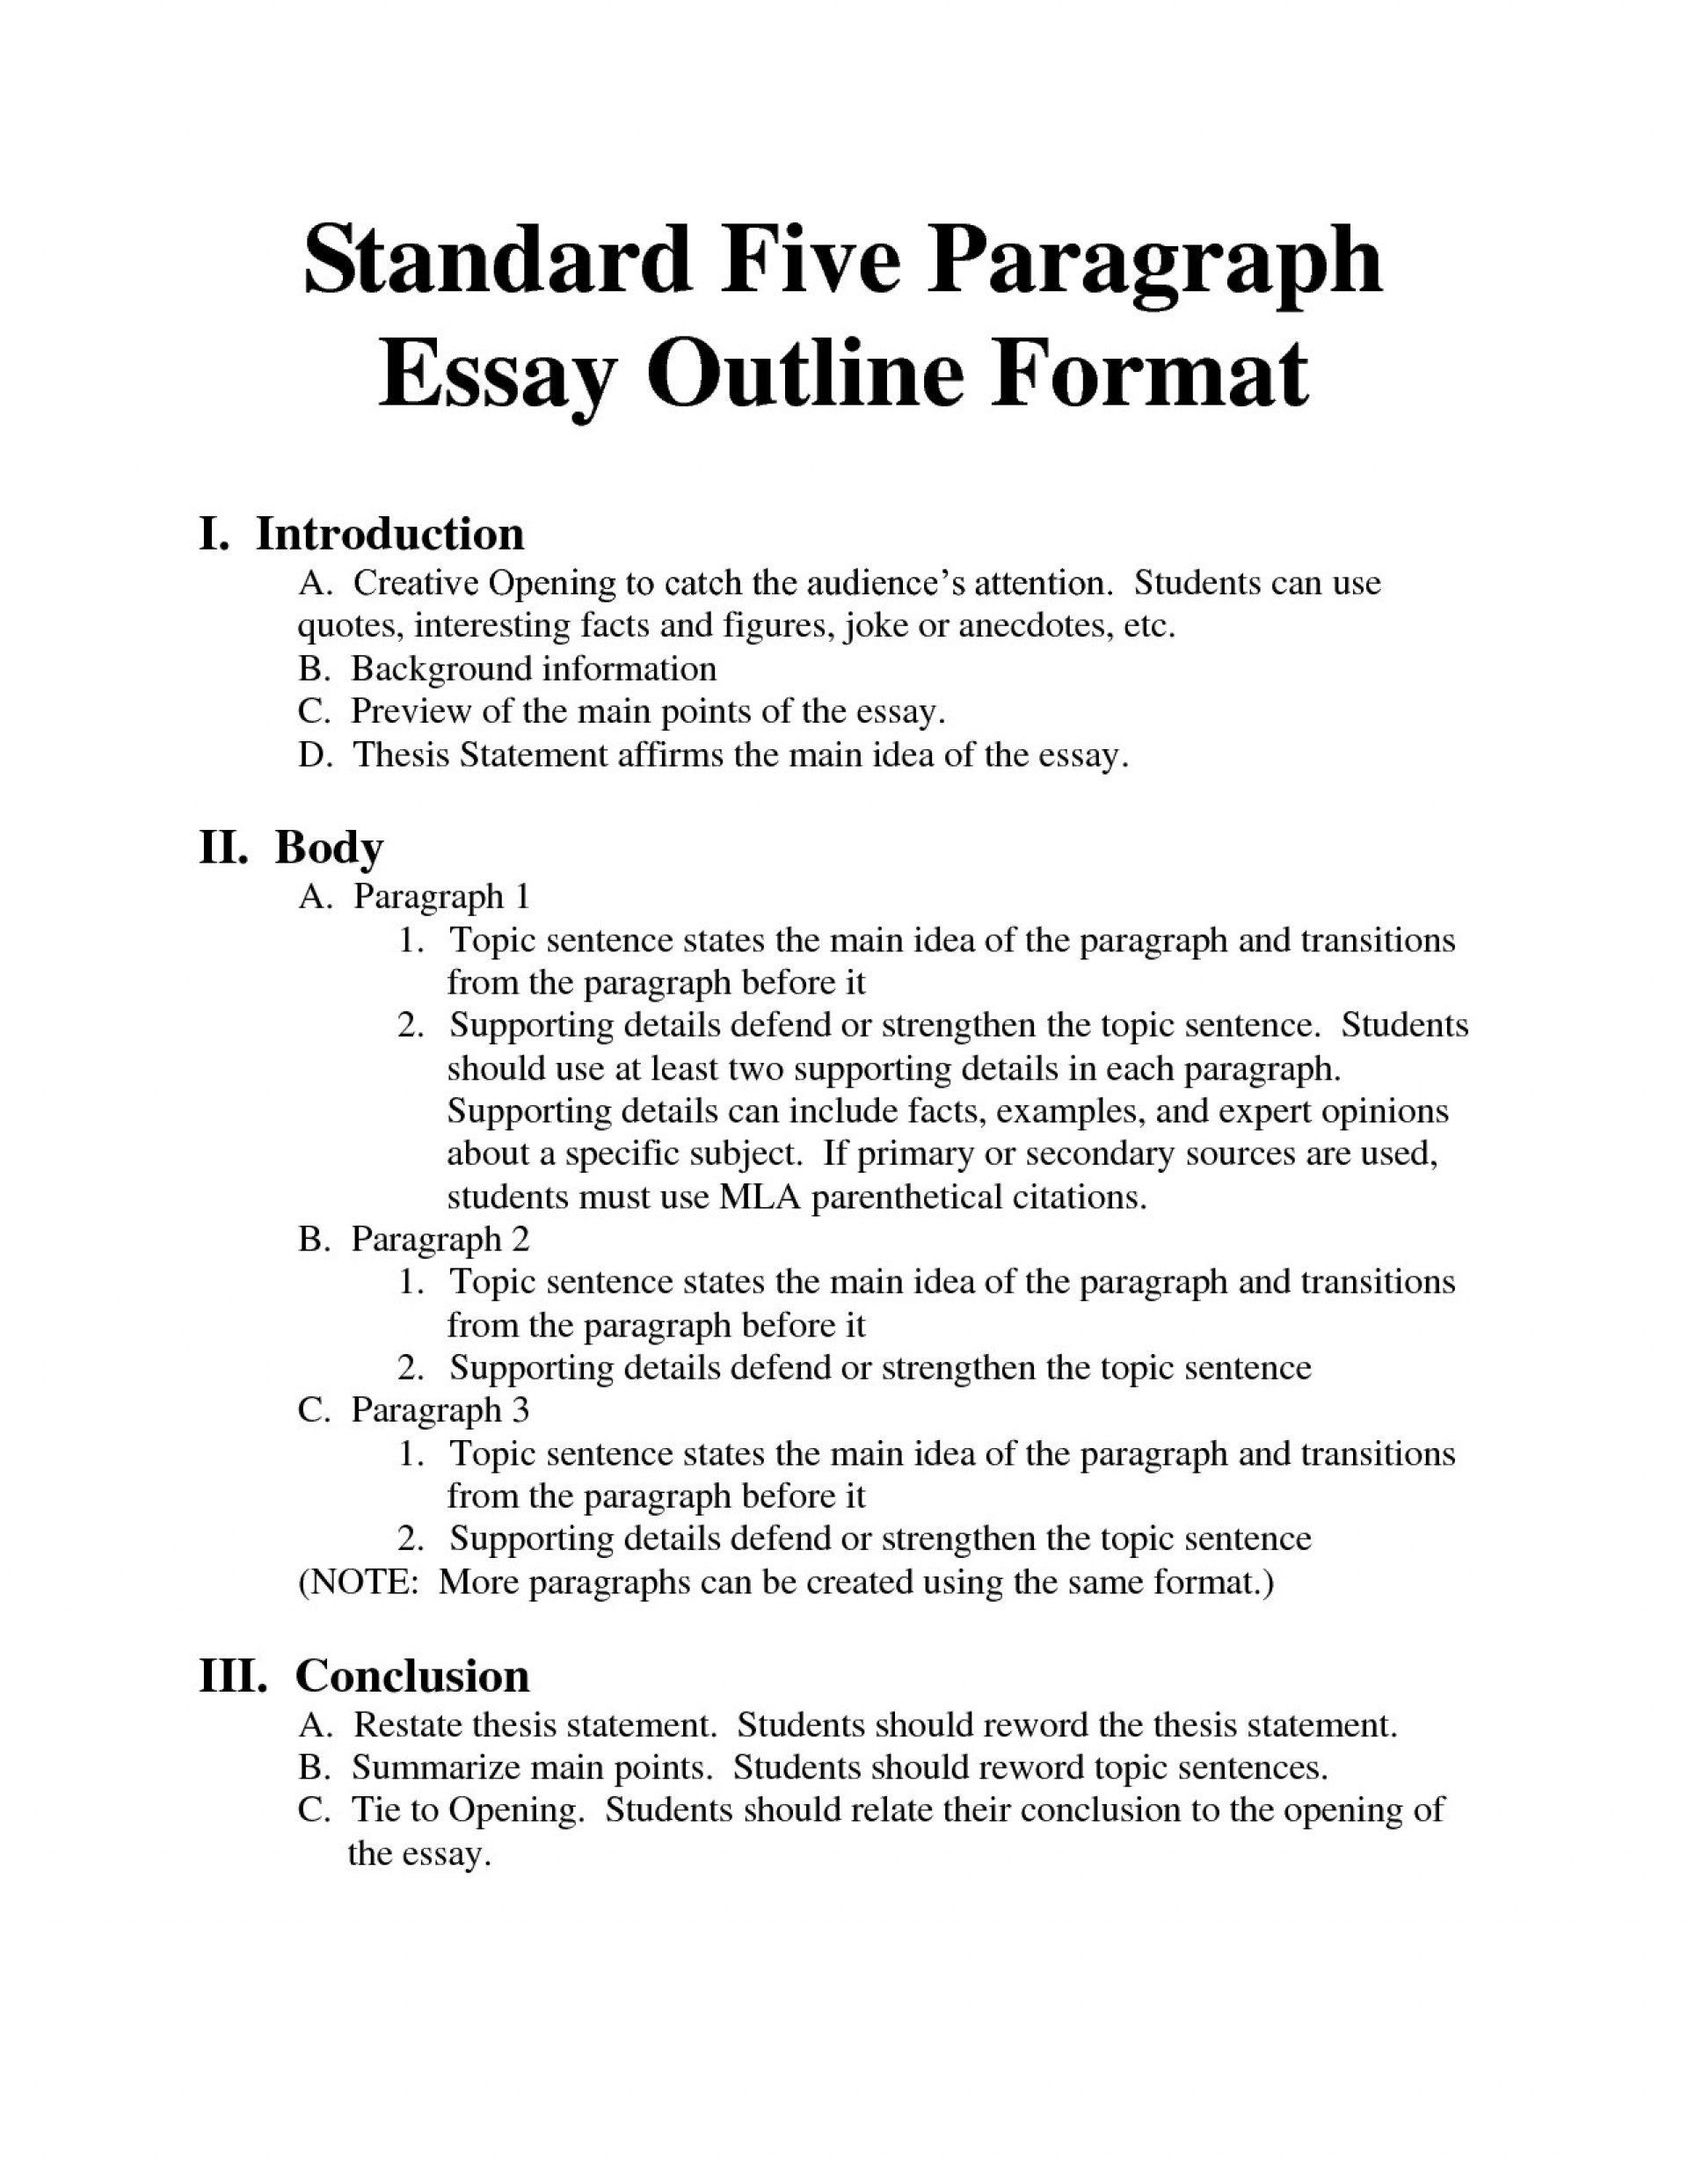 006 Proper Essay Format For Outline New Standard Bing Essays Correct Homescho Unique Pdf Paper College Argumentative 1920